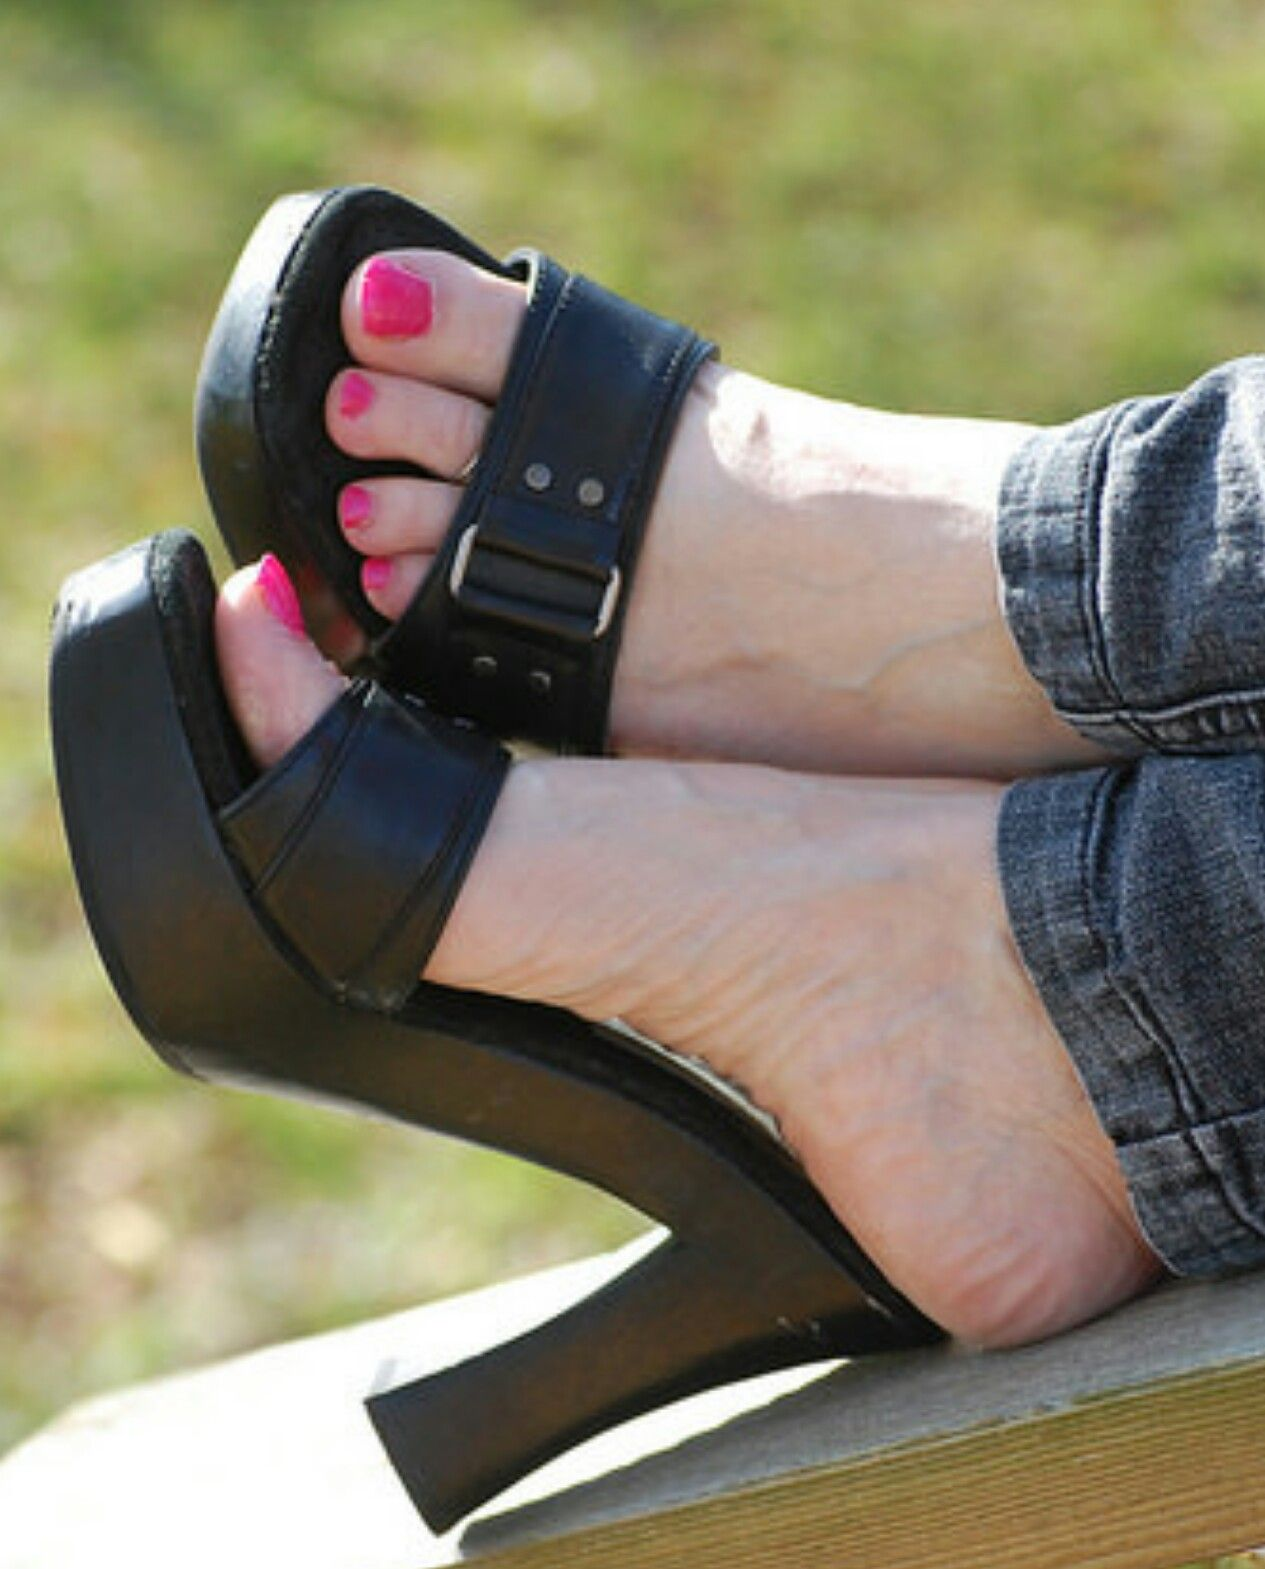 pin by mccobra on mules talons pied femme pieds. Black Bedroom Furniture Sets. Home Design Ideas